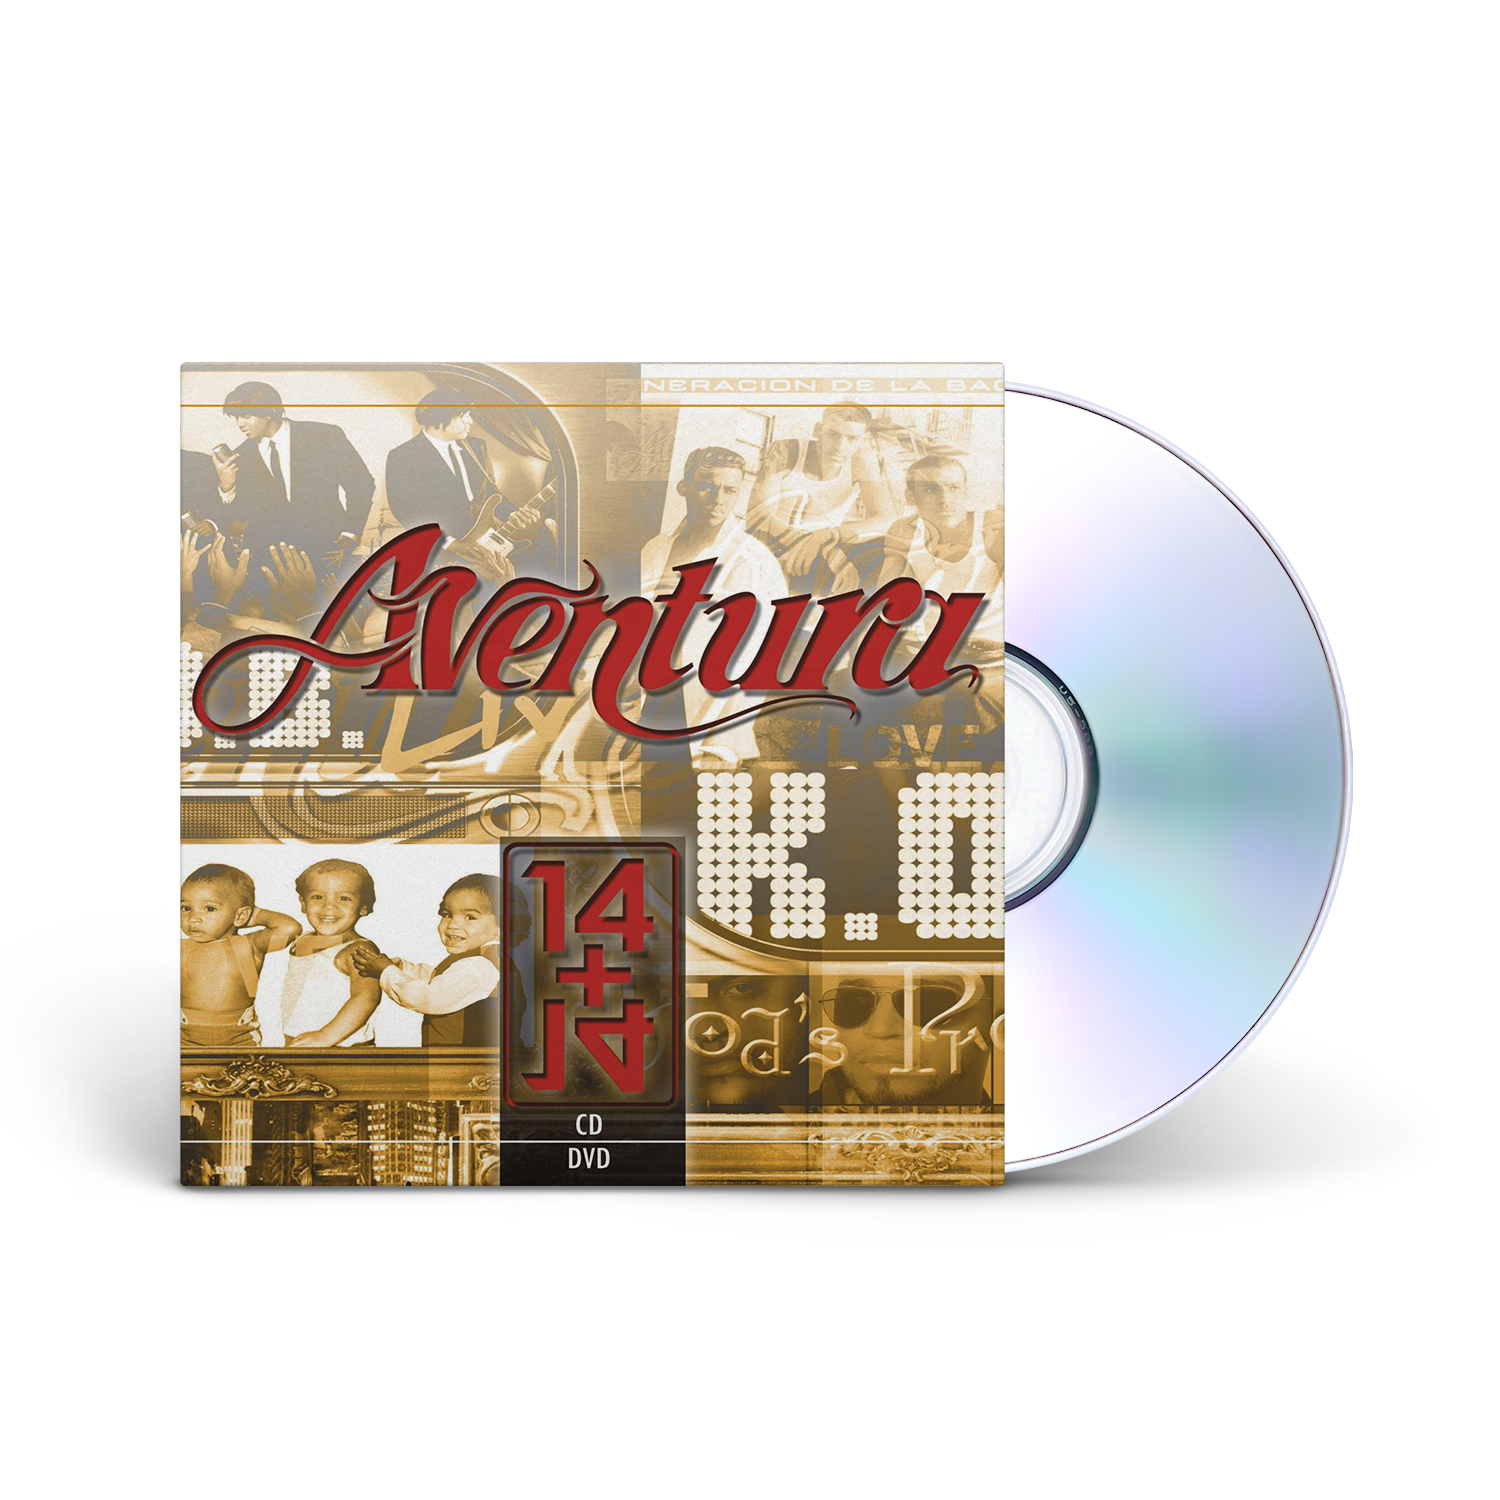 Aventura's 14 Plus 14 CD/DVD